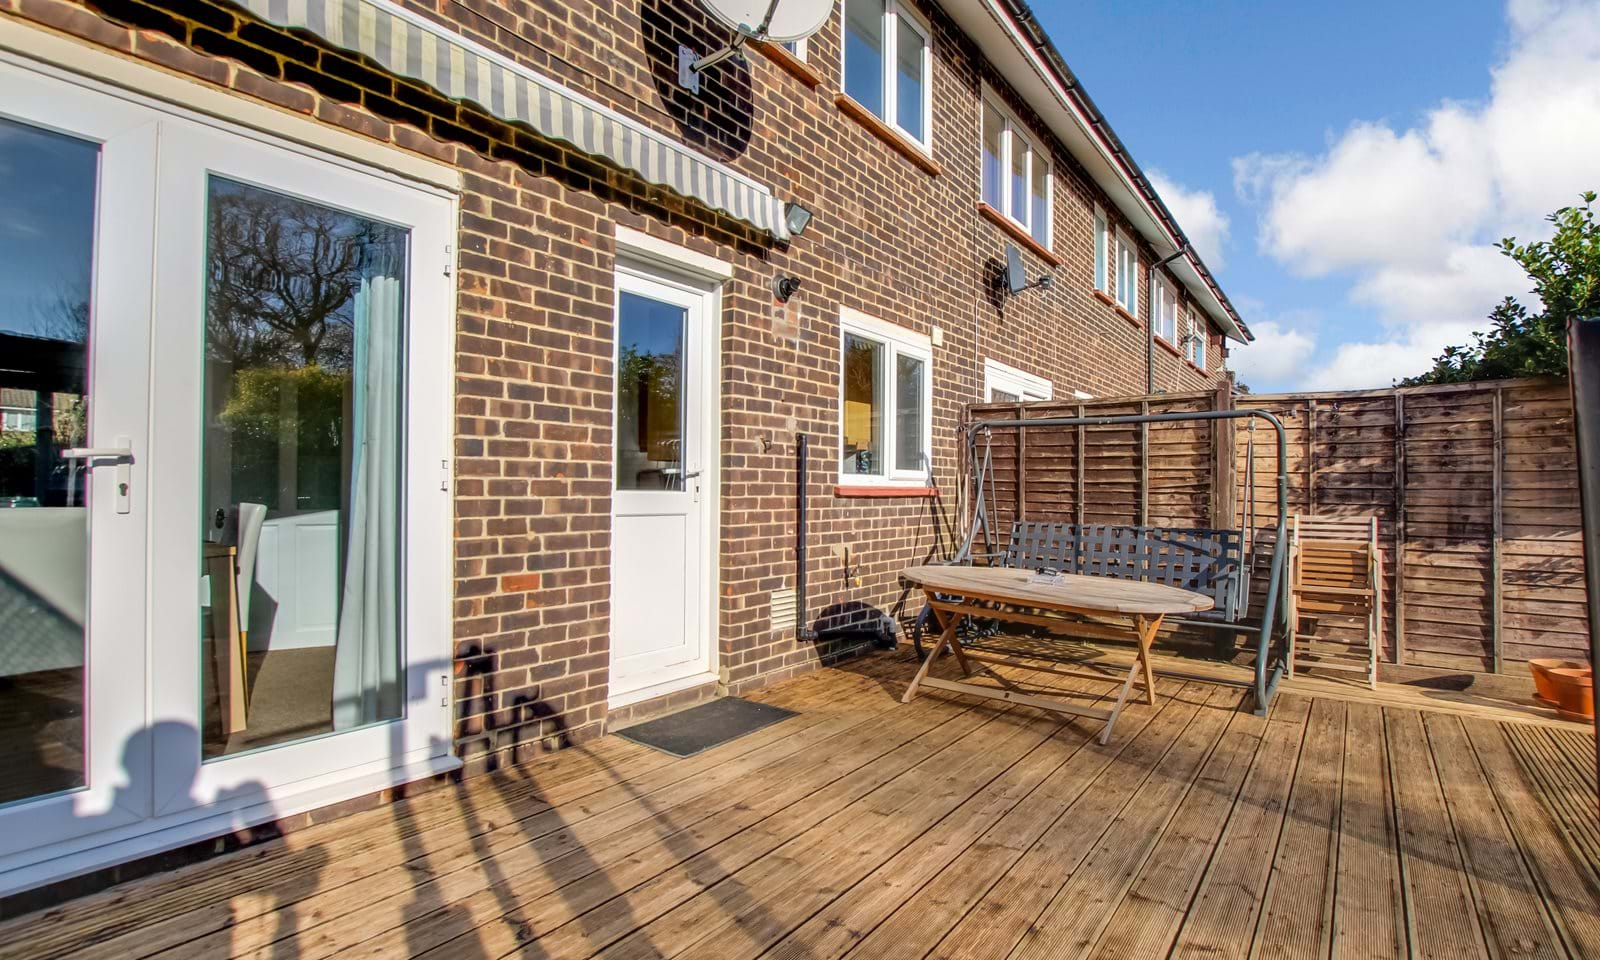 Decking Patio Area